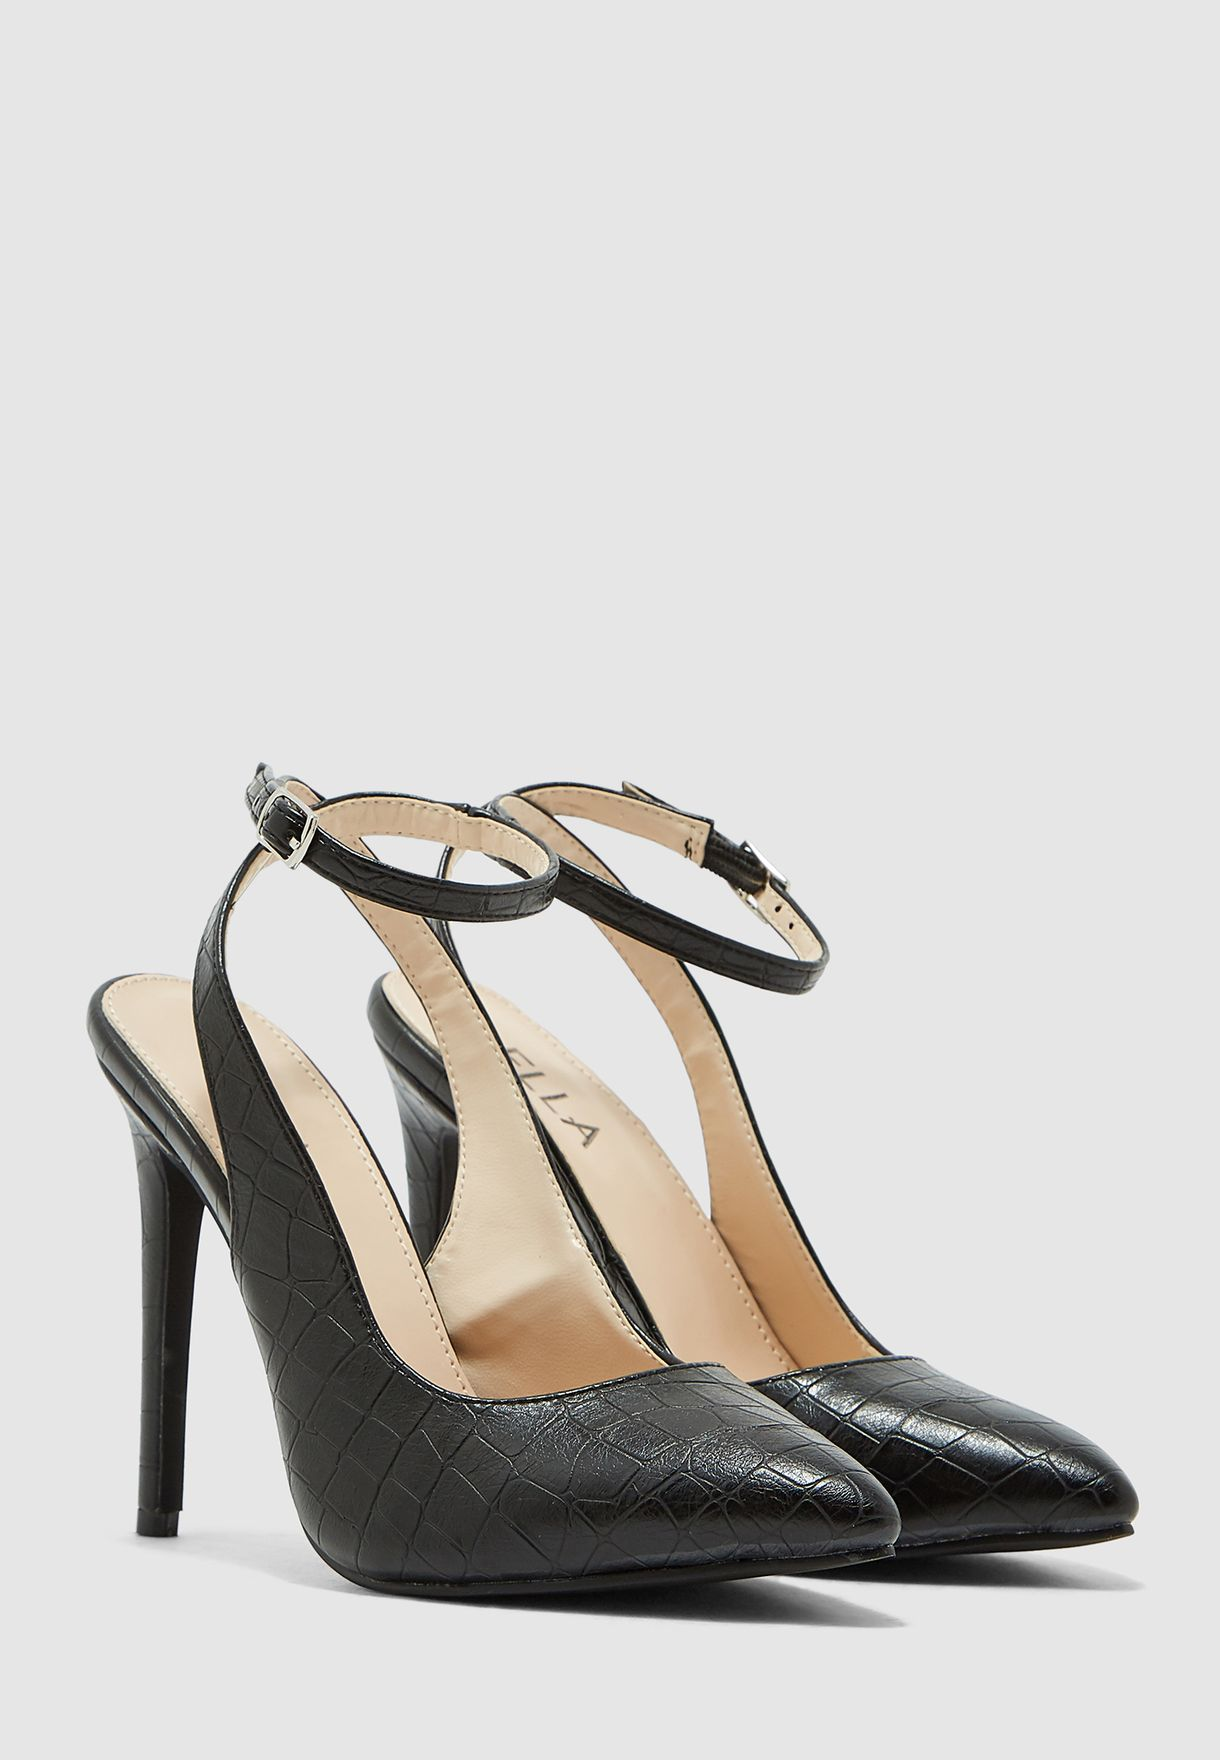 Cut Out Pumps With Ankle Fastening